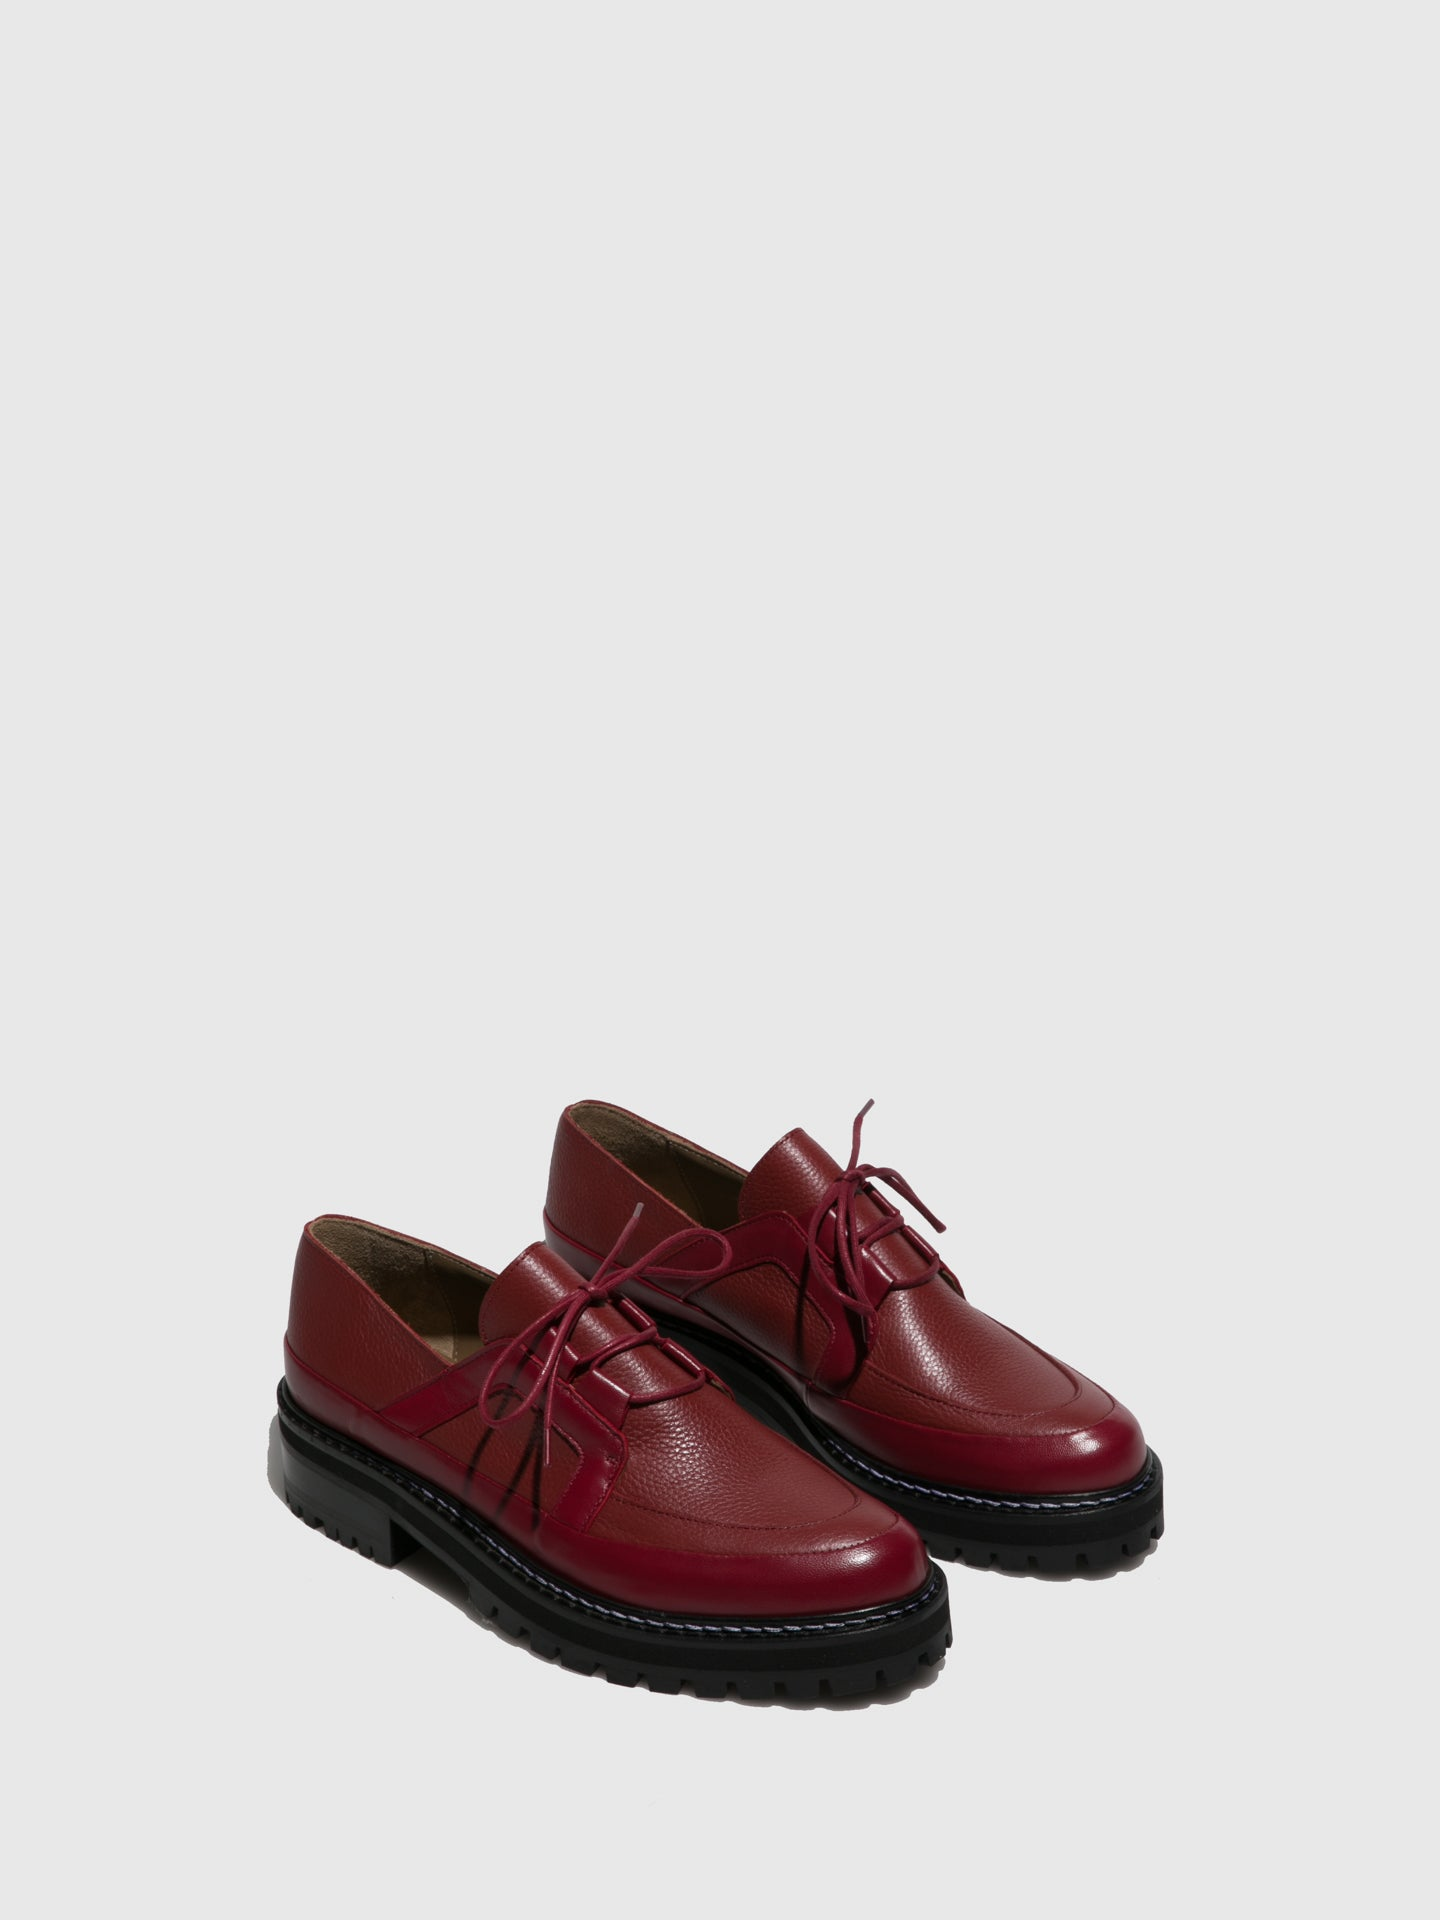 JJ Heitor DarkRed Lace-up Shoes